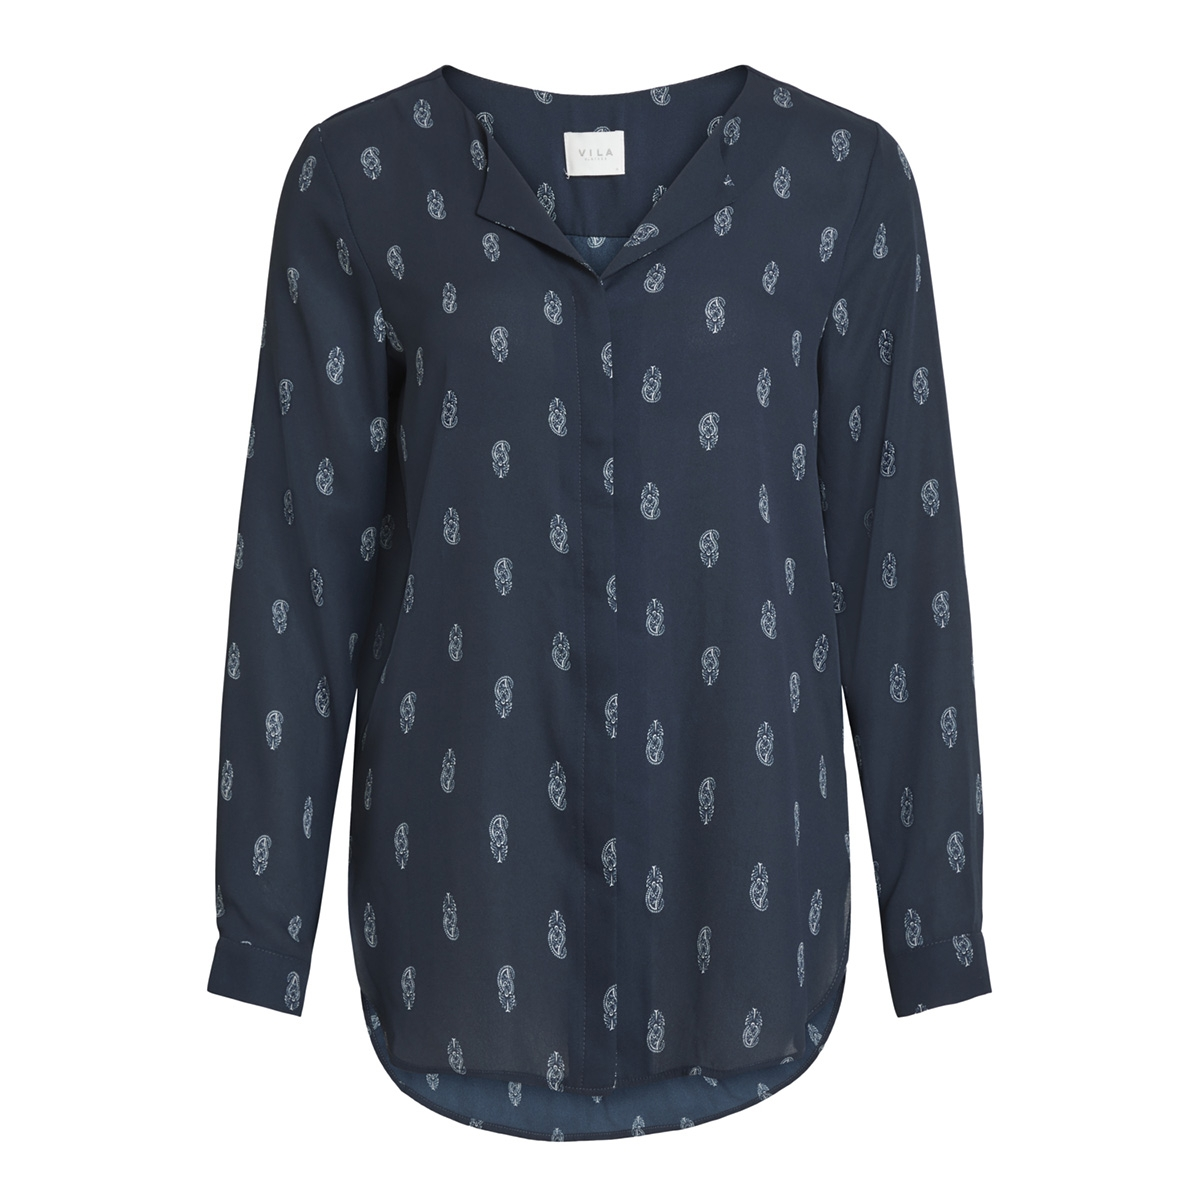 vilucy l/s shirt - fav lux 14049450 vila blouse total eclipse